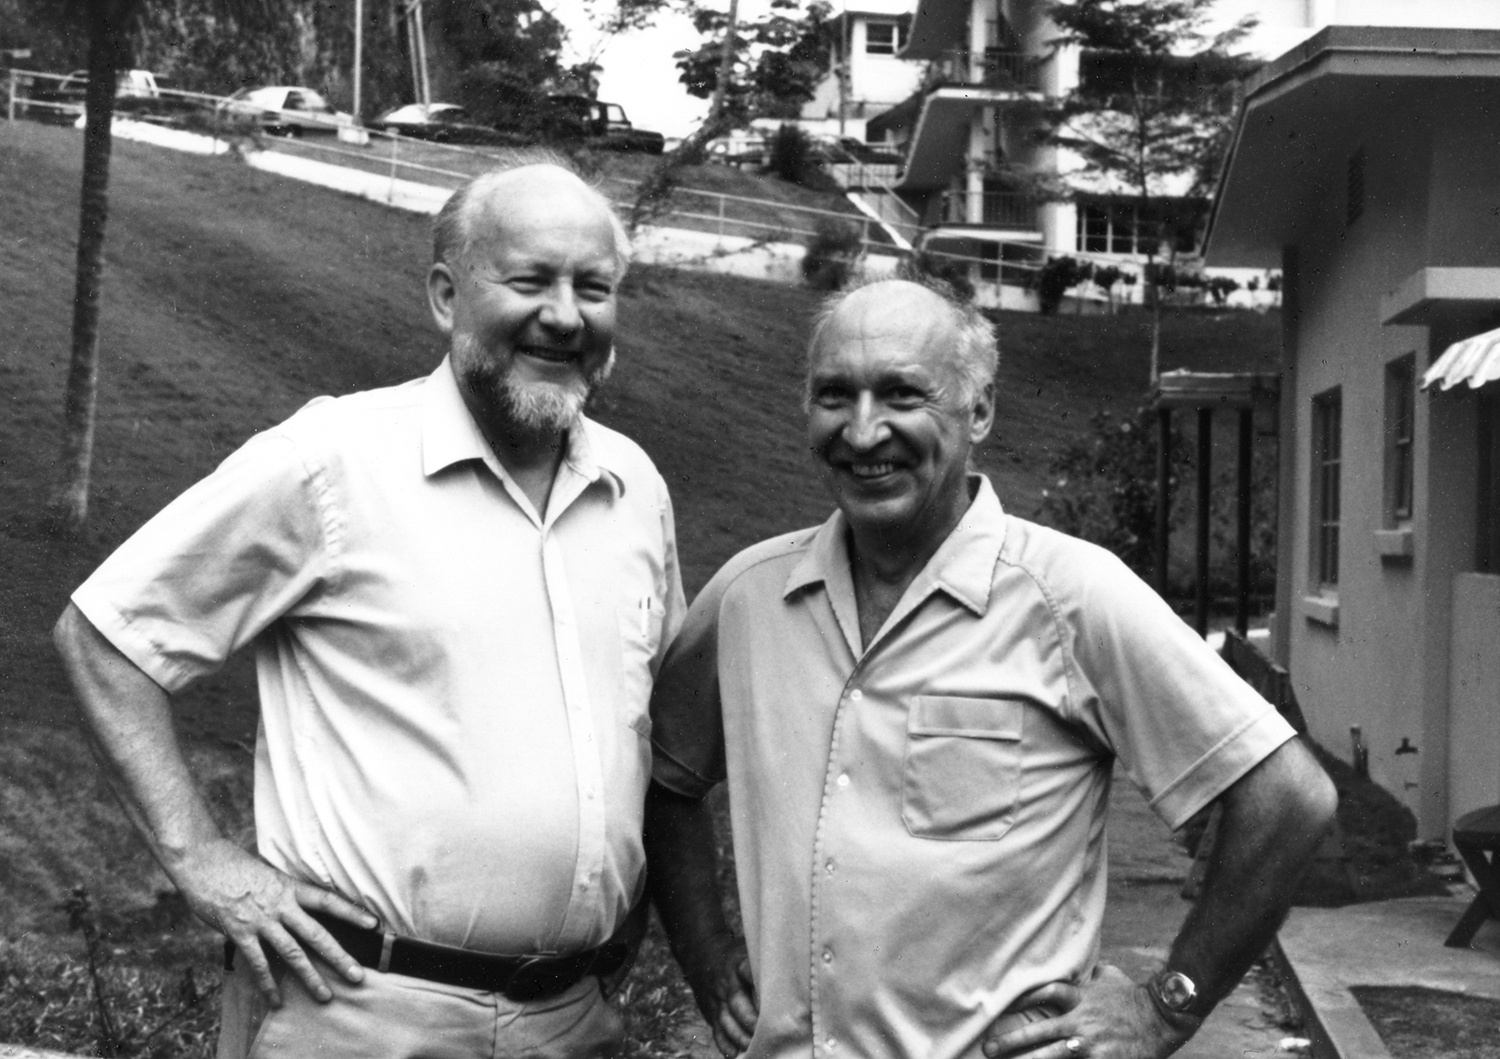 Tor Hagfors and Colin Hines in Arecibo, P.R.